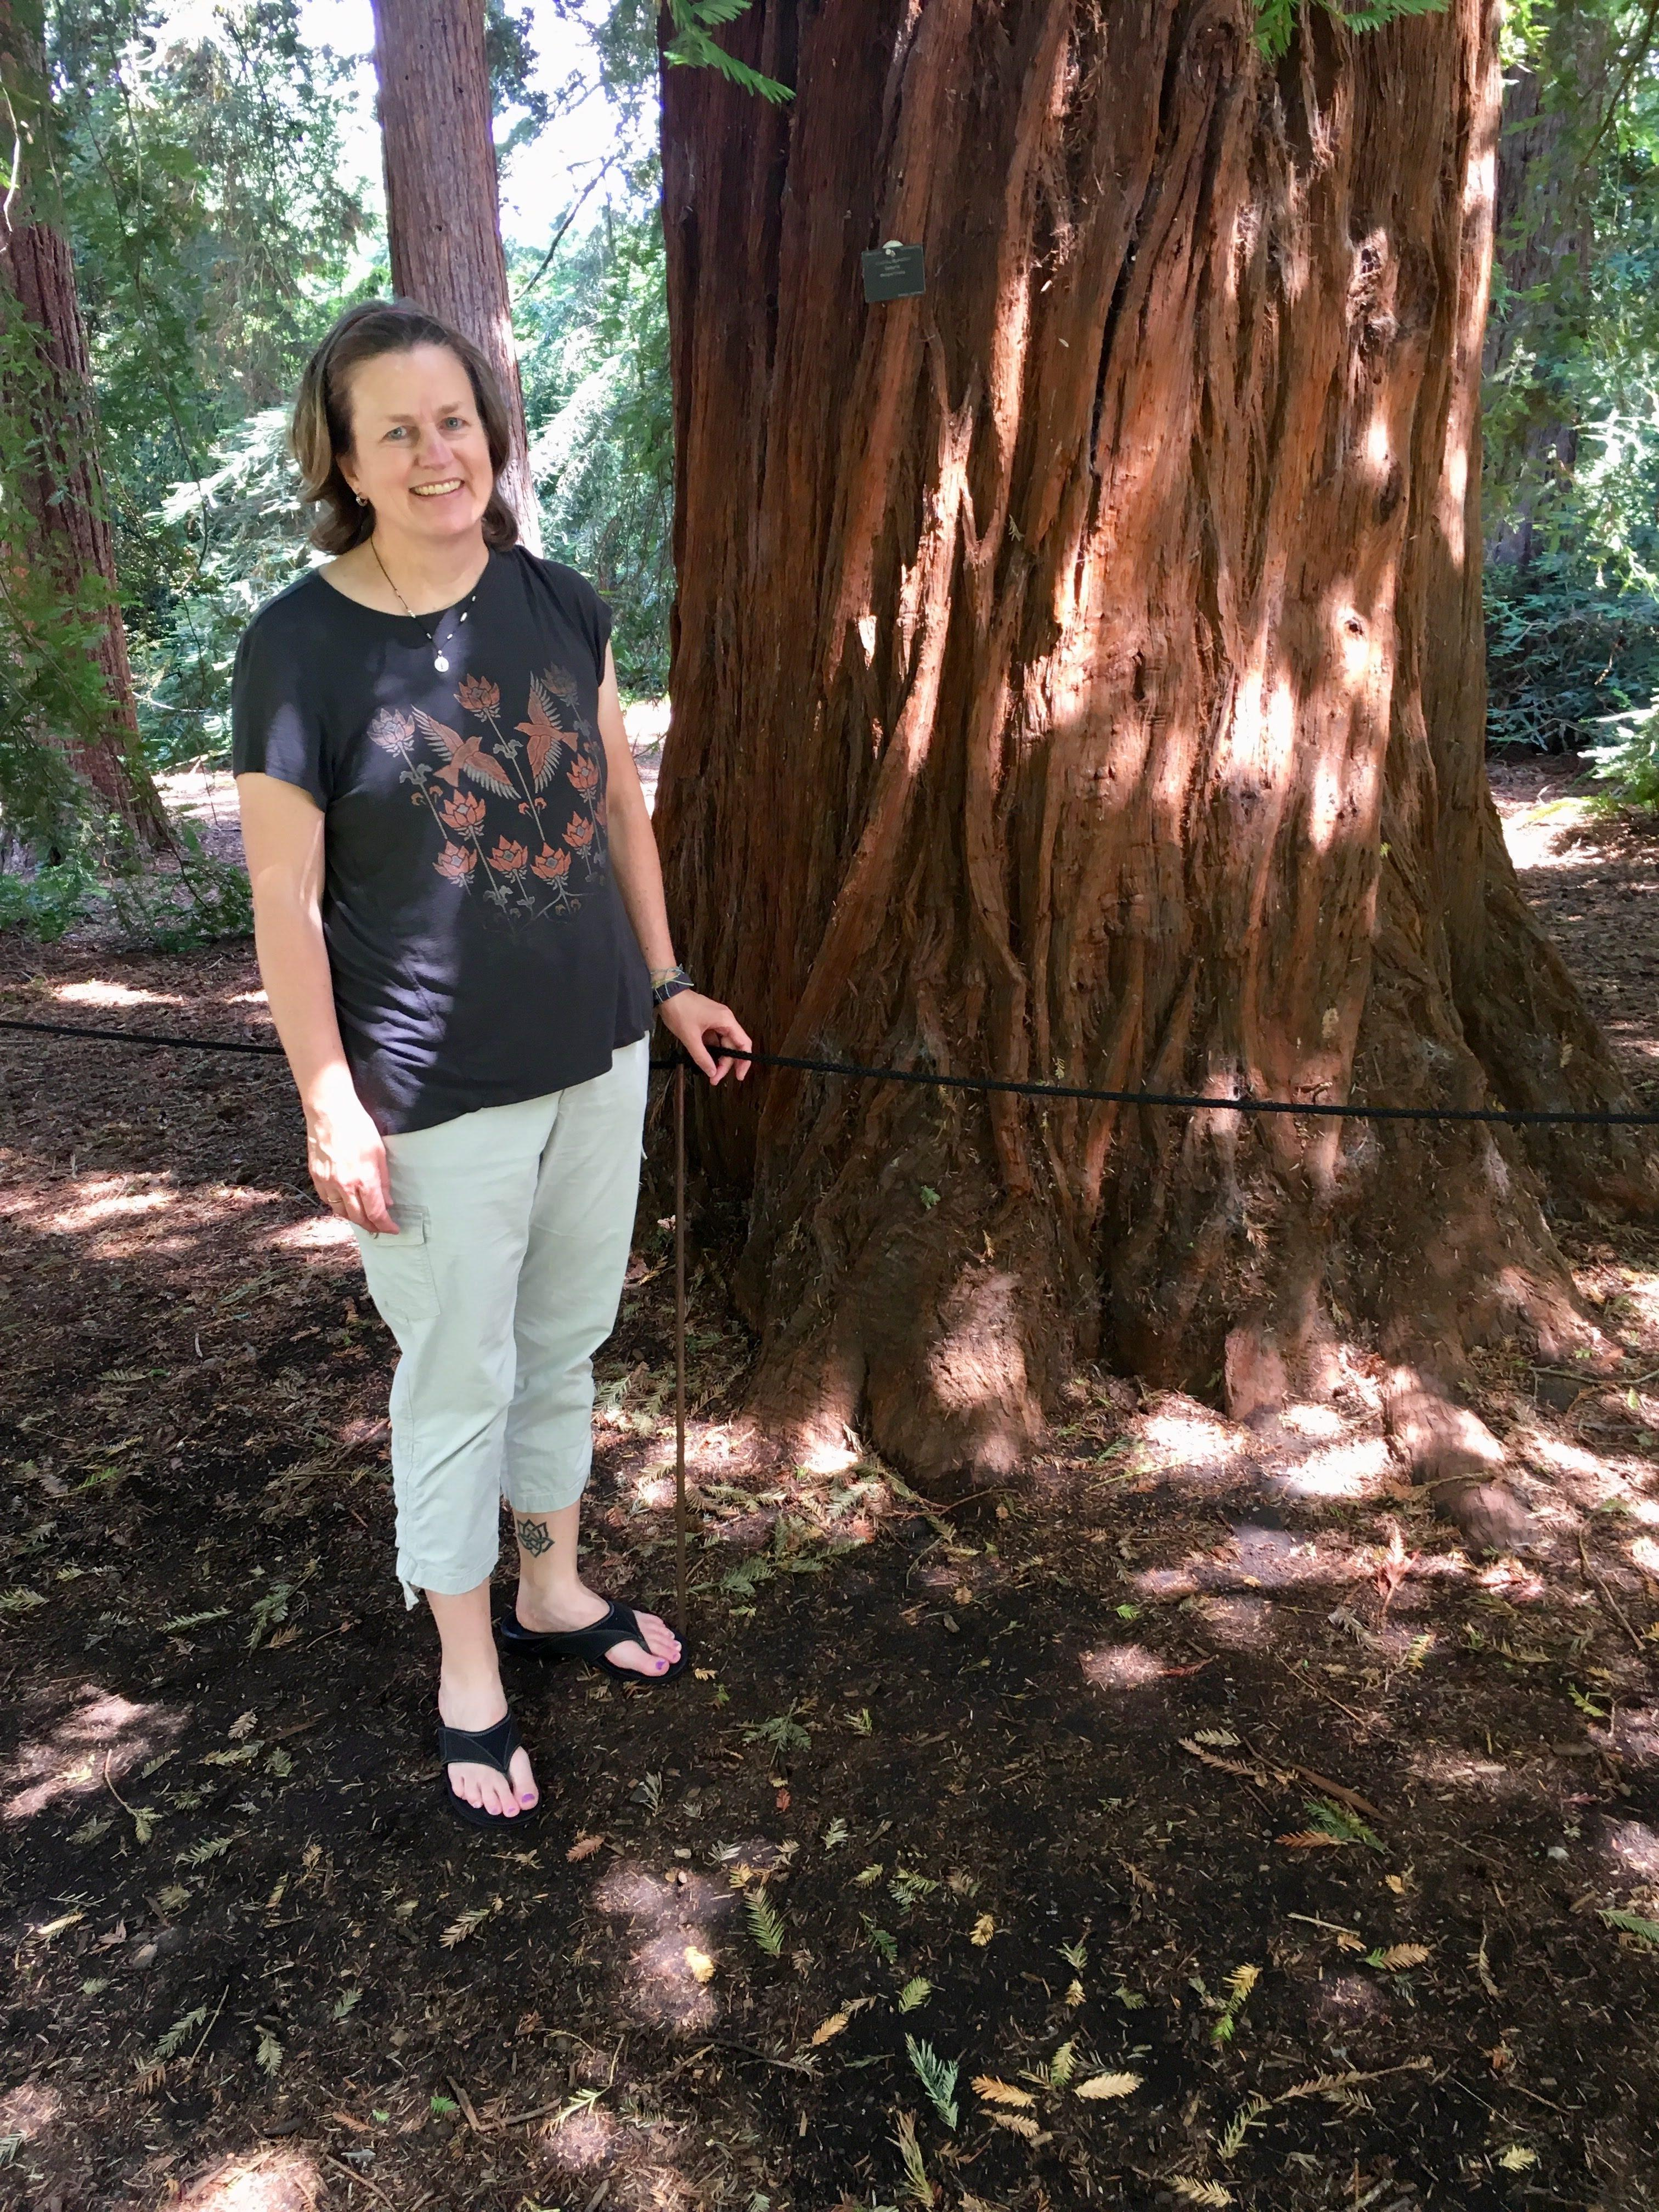 I found some giant redwoods at London's Kew Gardens!